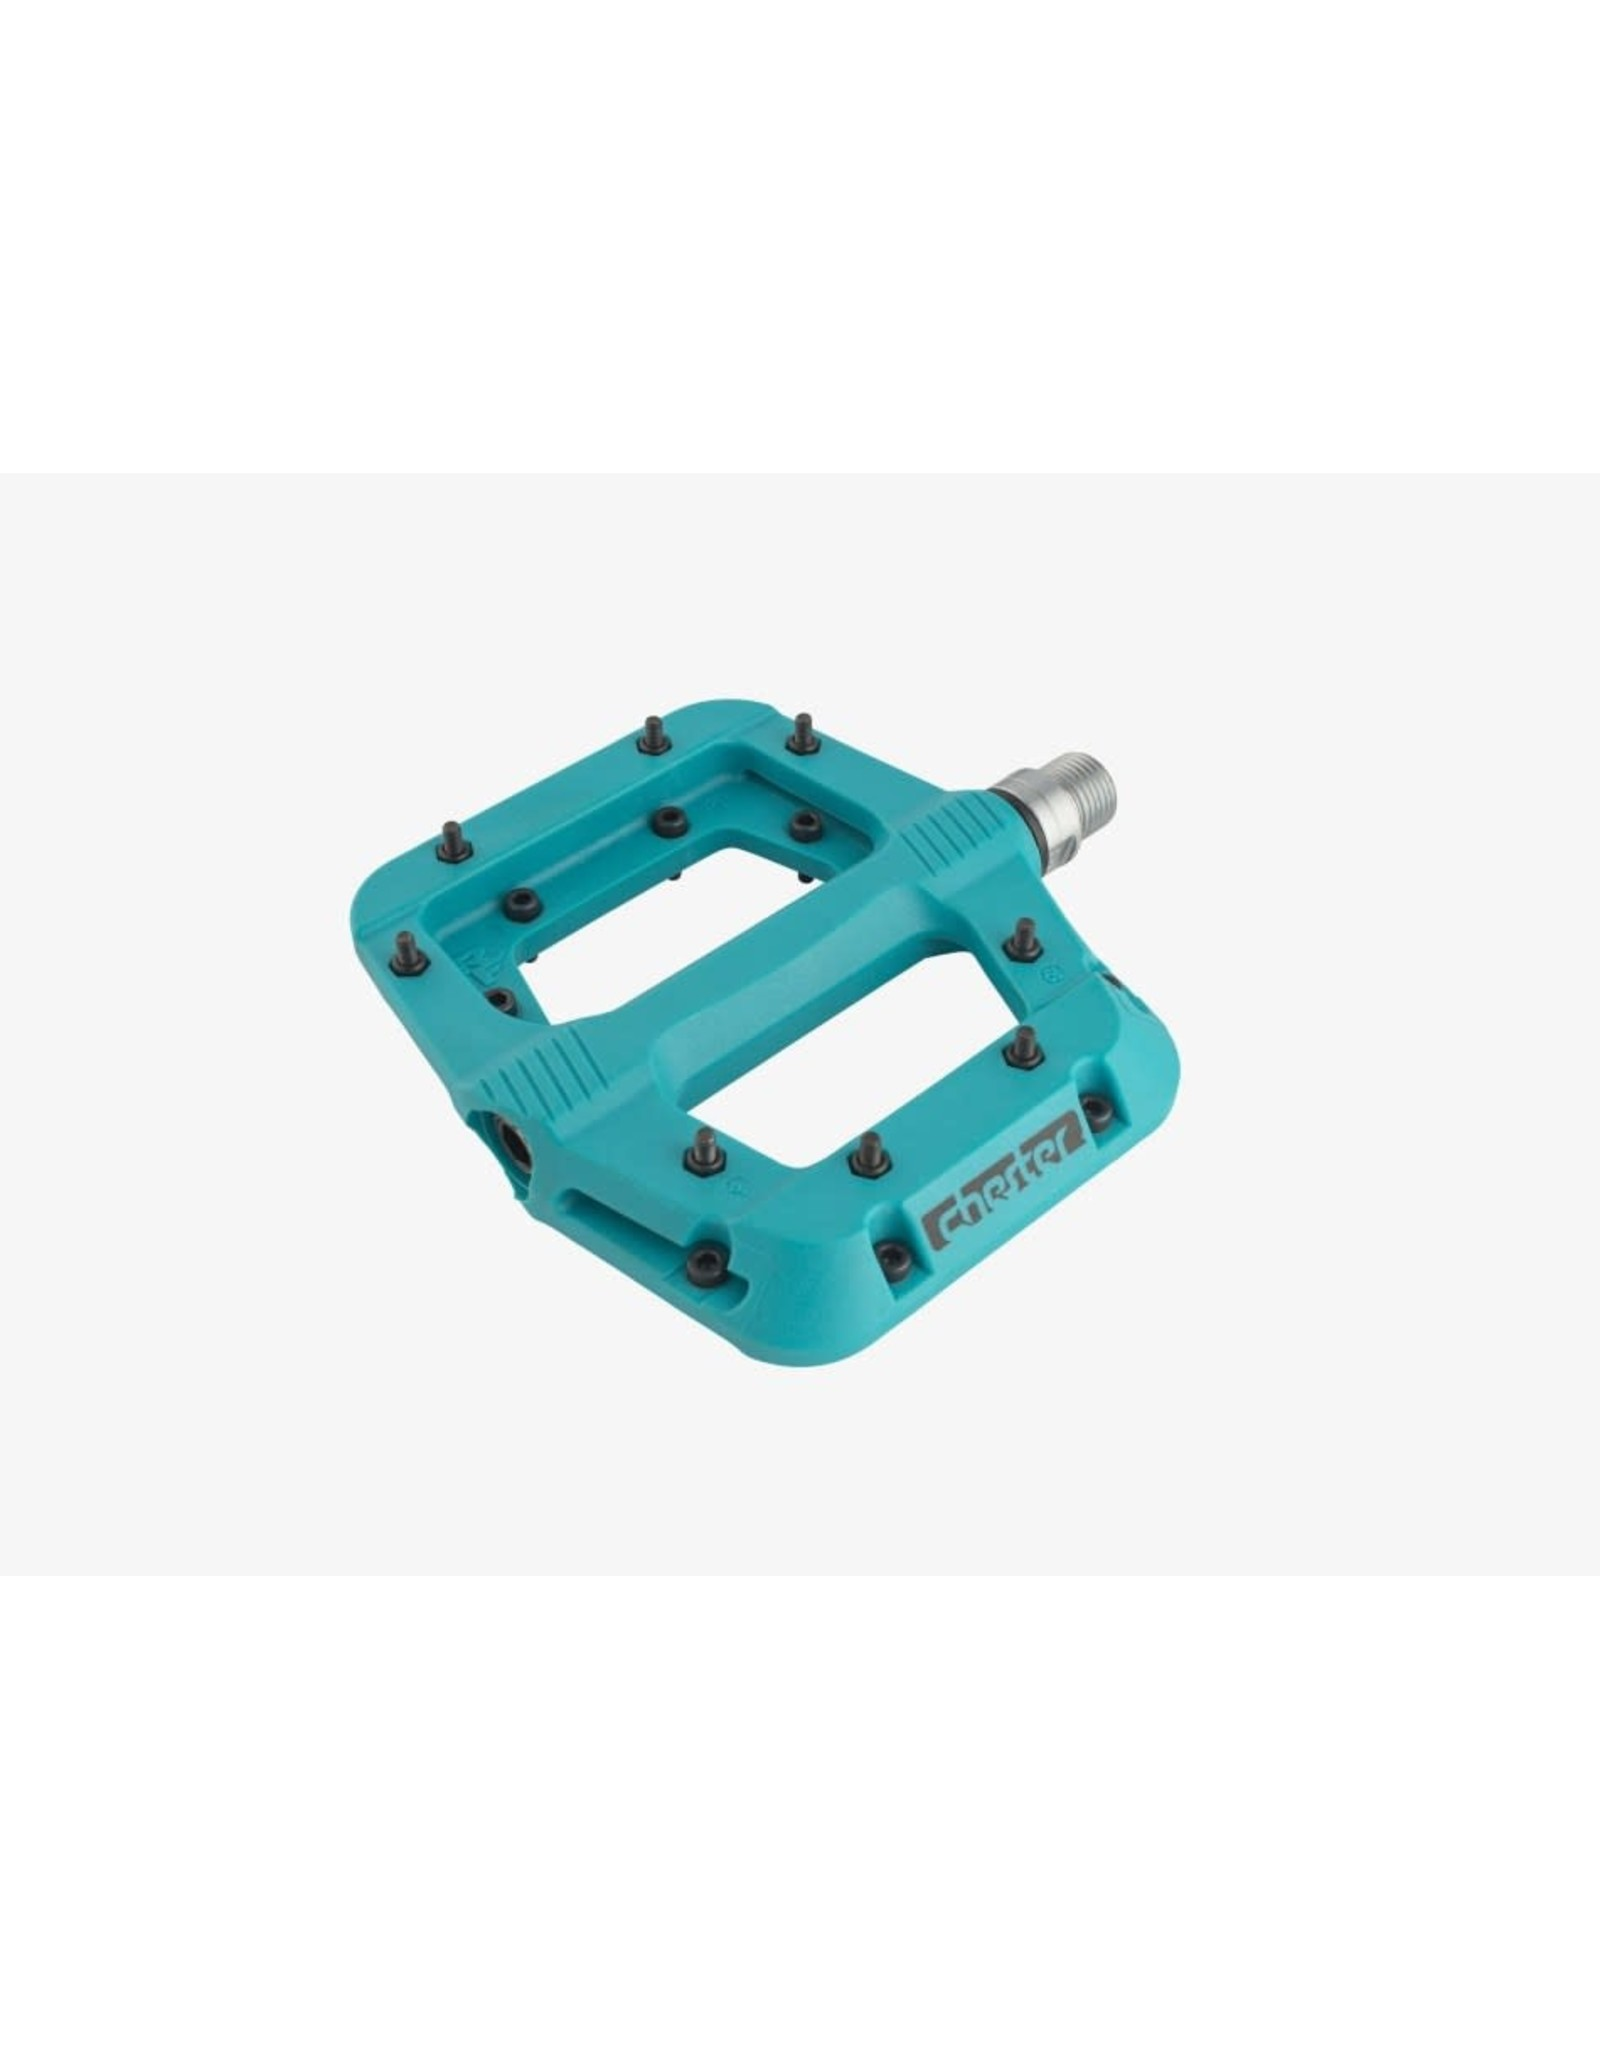 RaceFace Chester Pedals - Platform, Composite, Turquoise